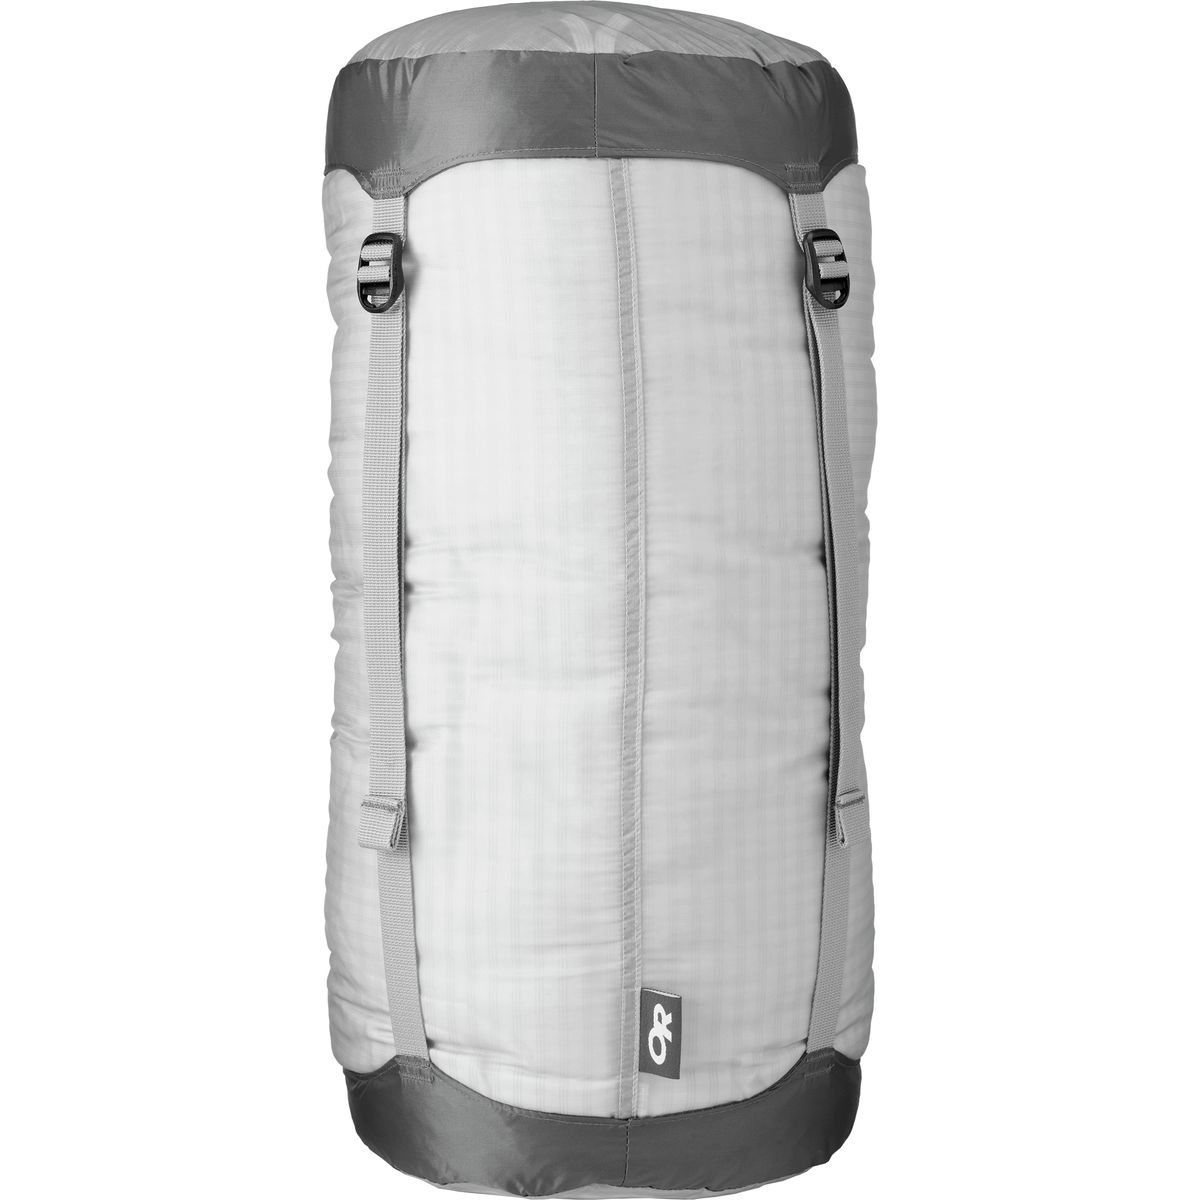 Outdoor Research Ultralight Compression Sack